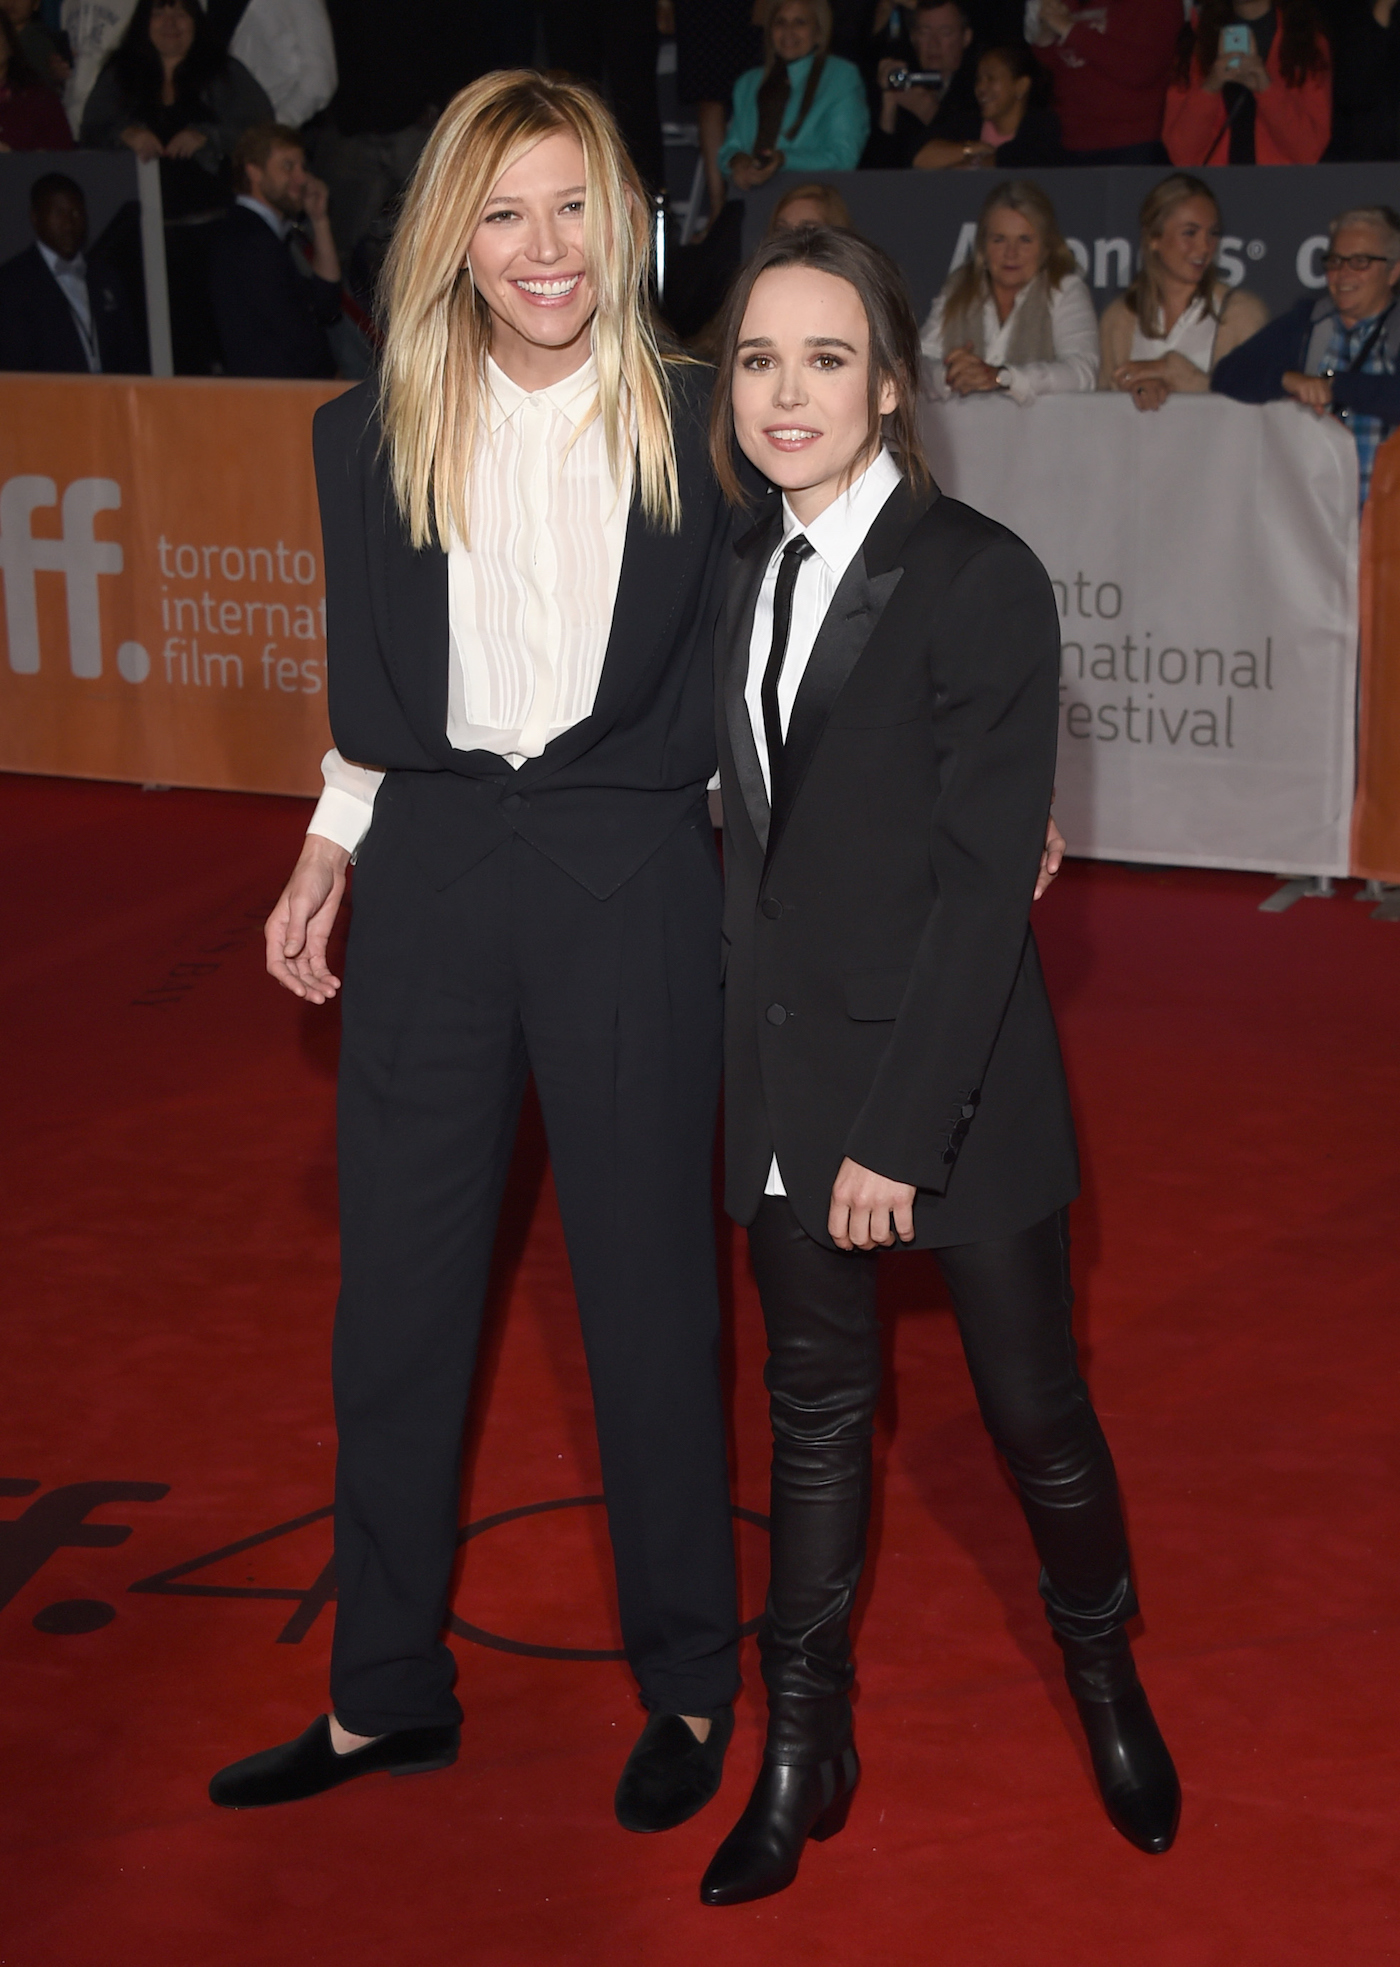 """TORONTO, ON - SEPTEMBER 13: Actress Ellen Page (R) and Samantha Thomas attend the """"Freeheld"""" premiere during the 2015 Toronto International Film Festival at Roy Thomson Hall on September 13, 2015 in Toronto, Canada. (Photo by Jason Merritt/Getty Images)"""